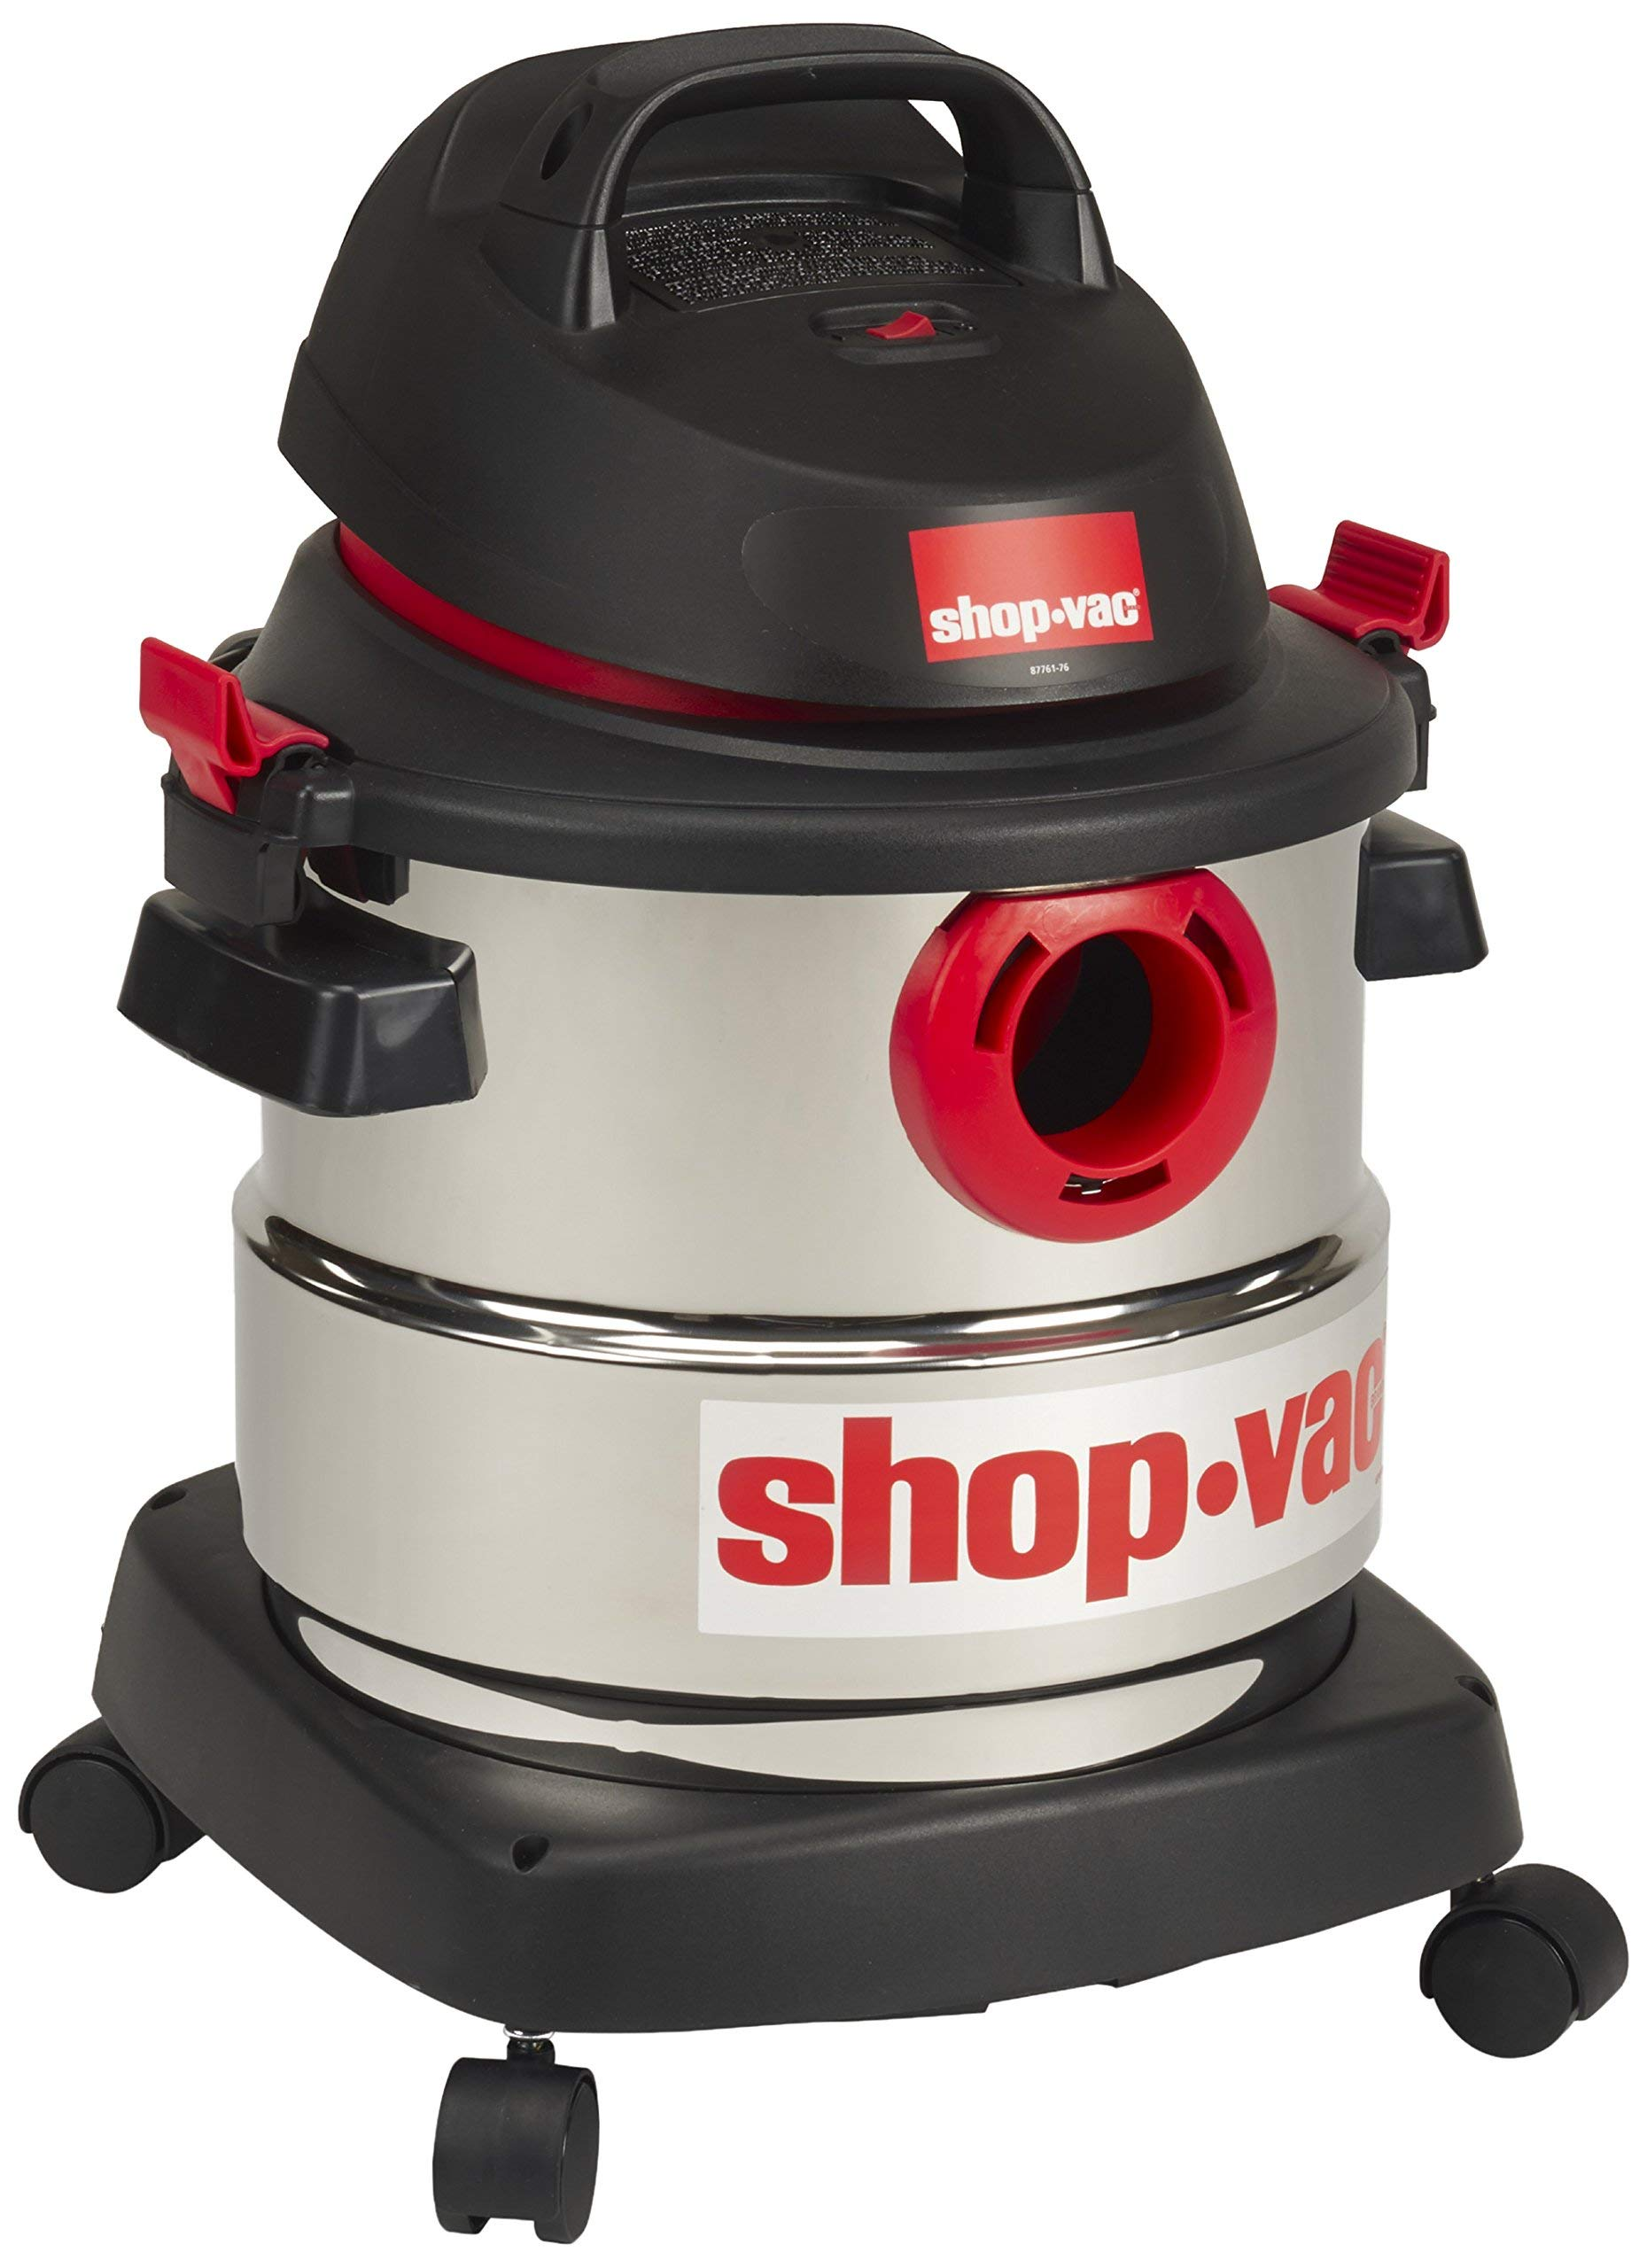 Shop-Vac 5989300 5-Gallon 4.5 Peak HP Stainless Steel Wet Dry Vacuum (Renewed) by Shop-Vac